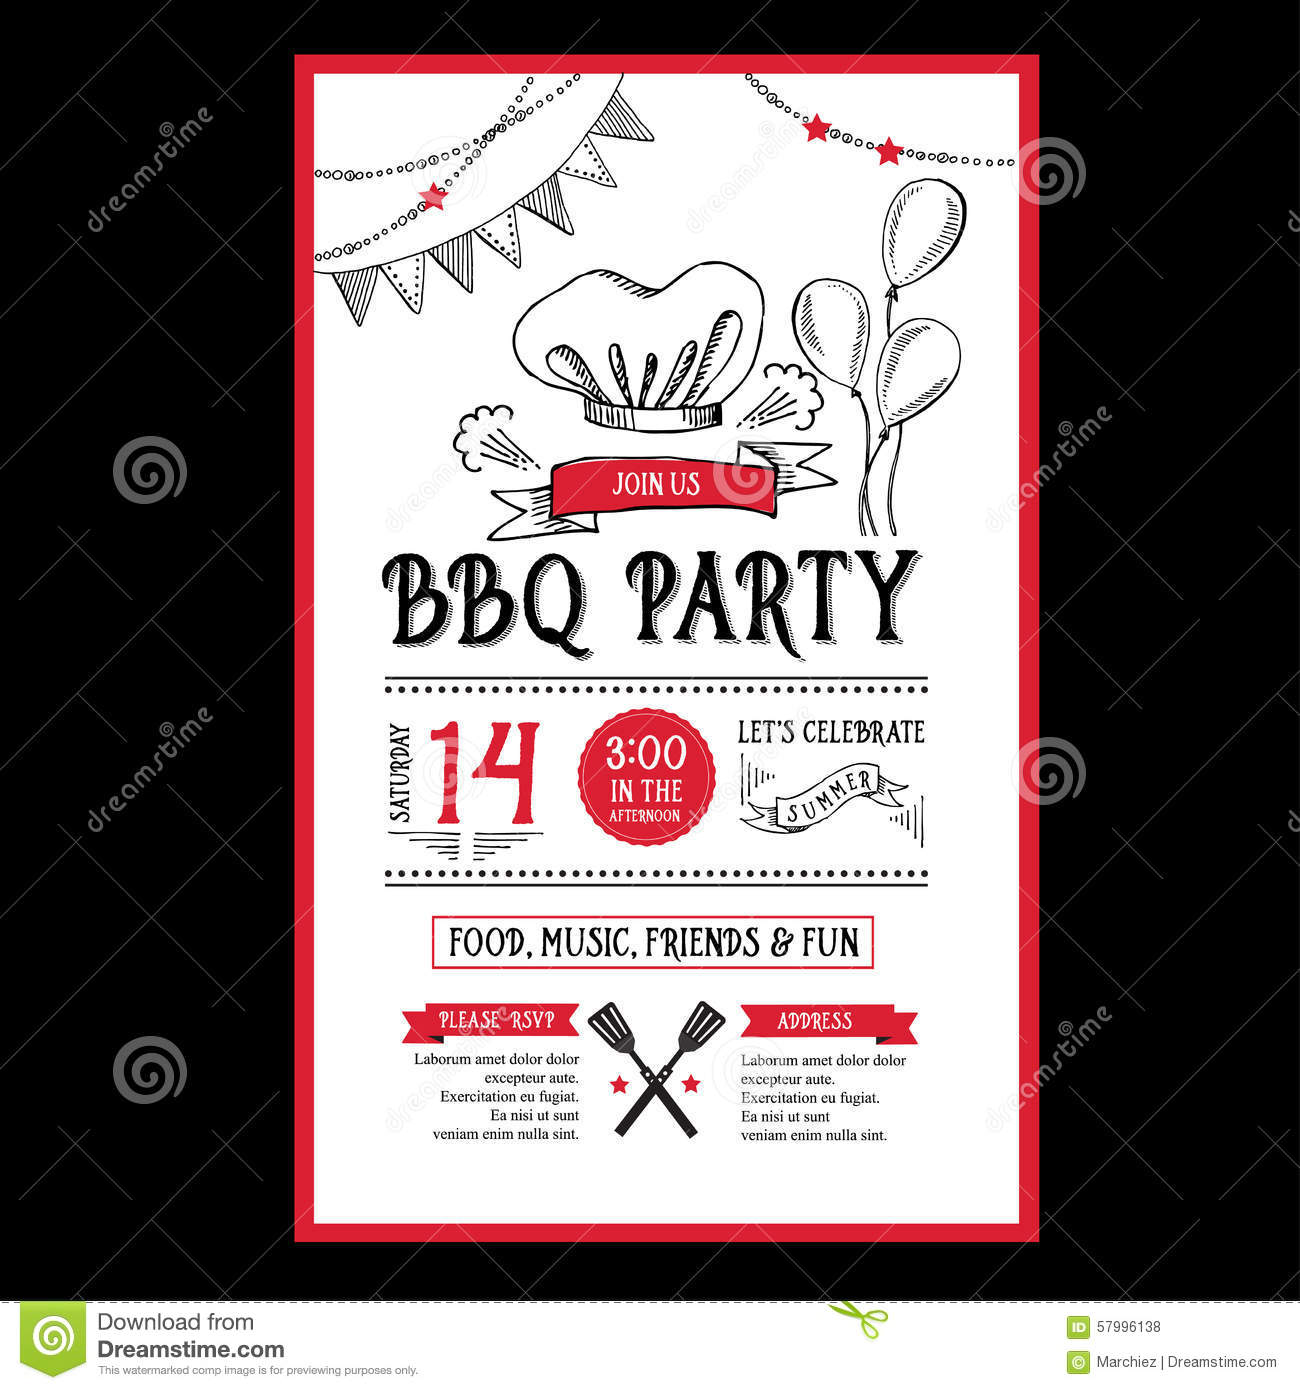 bbq invitation template - solarfm.tk